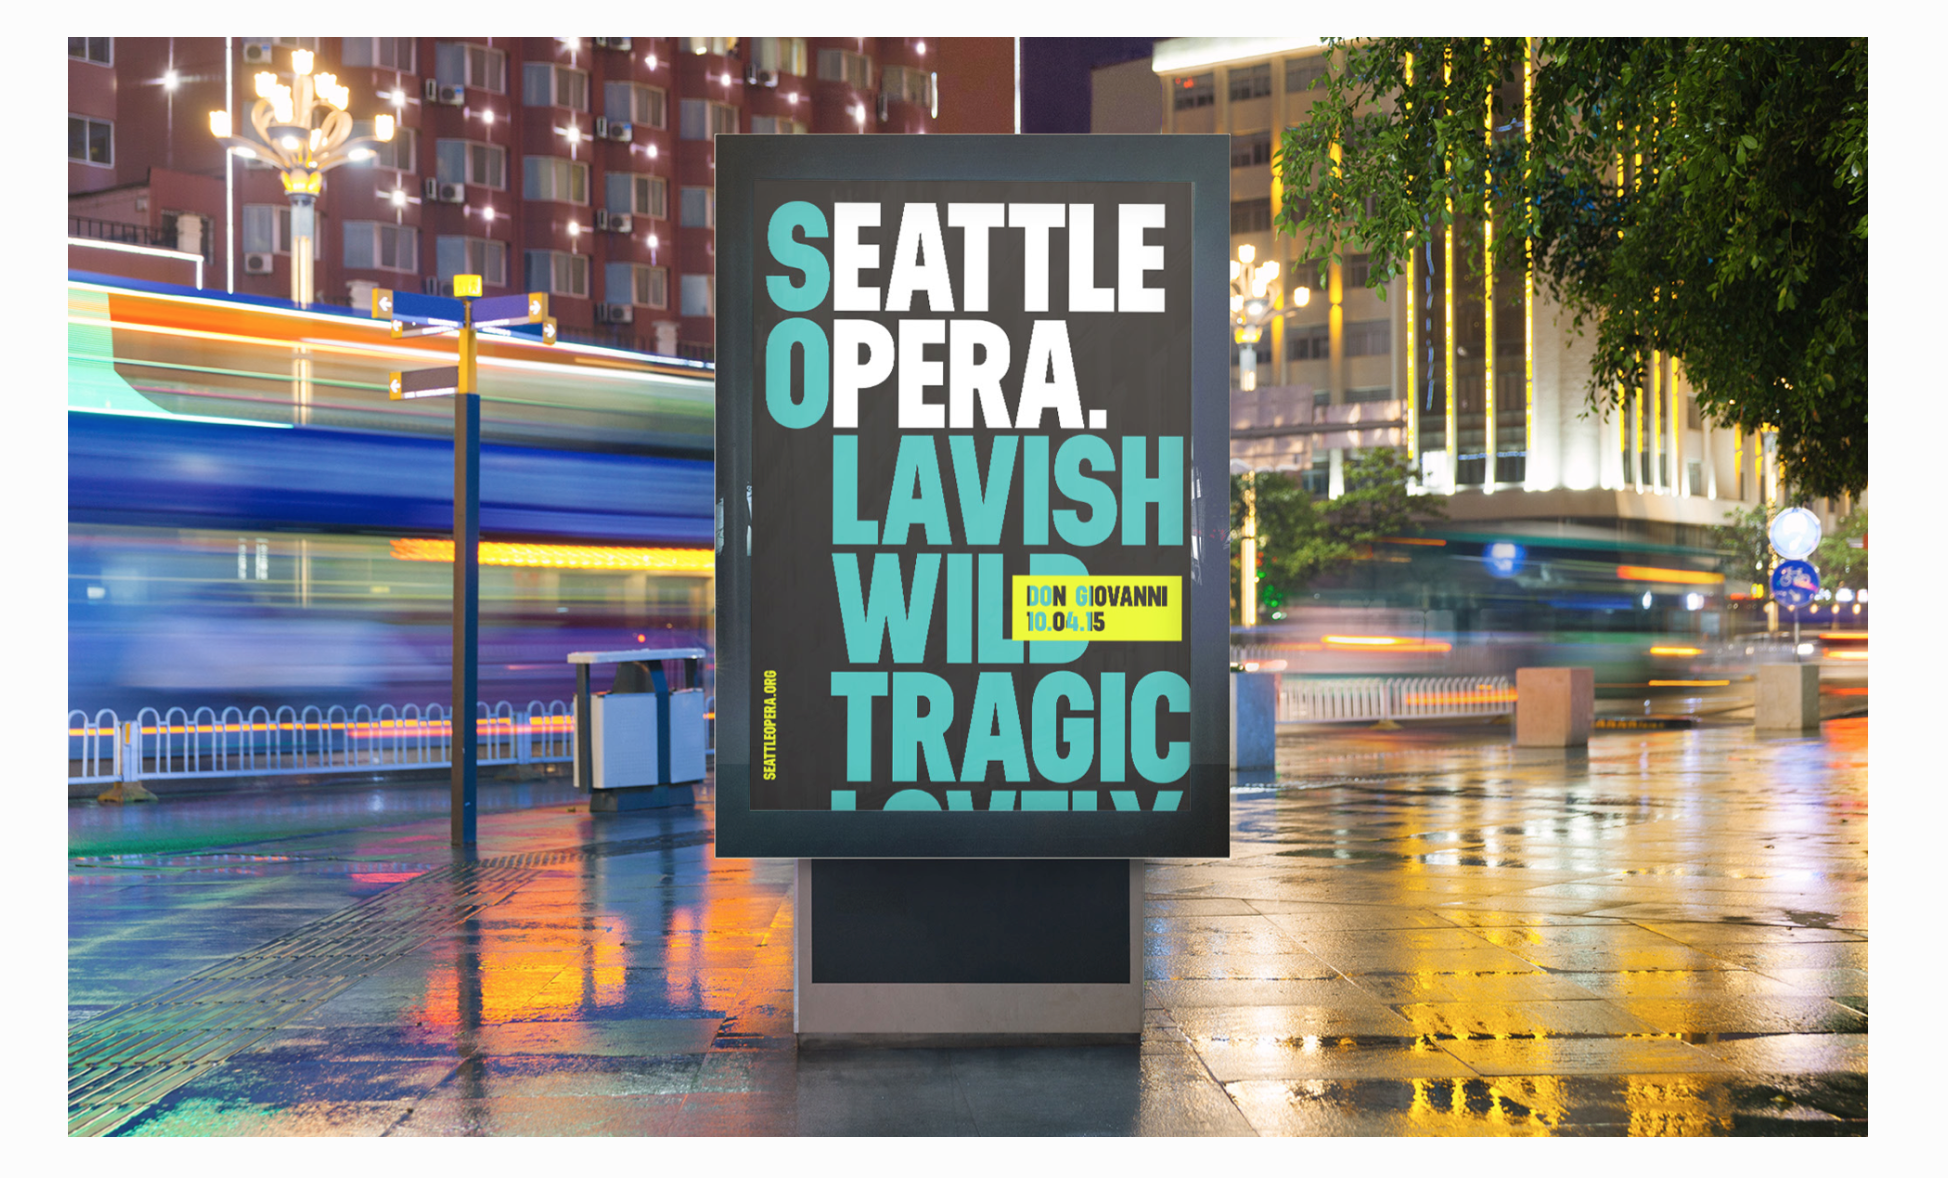 Seattle Opera Bus side.png